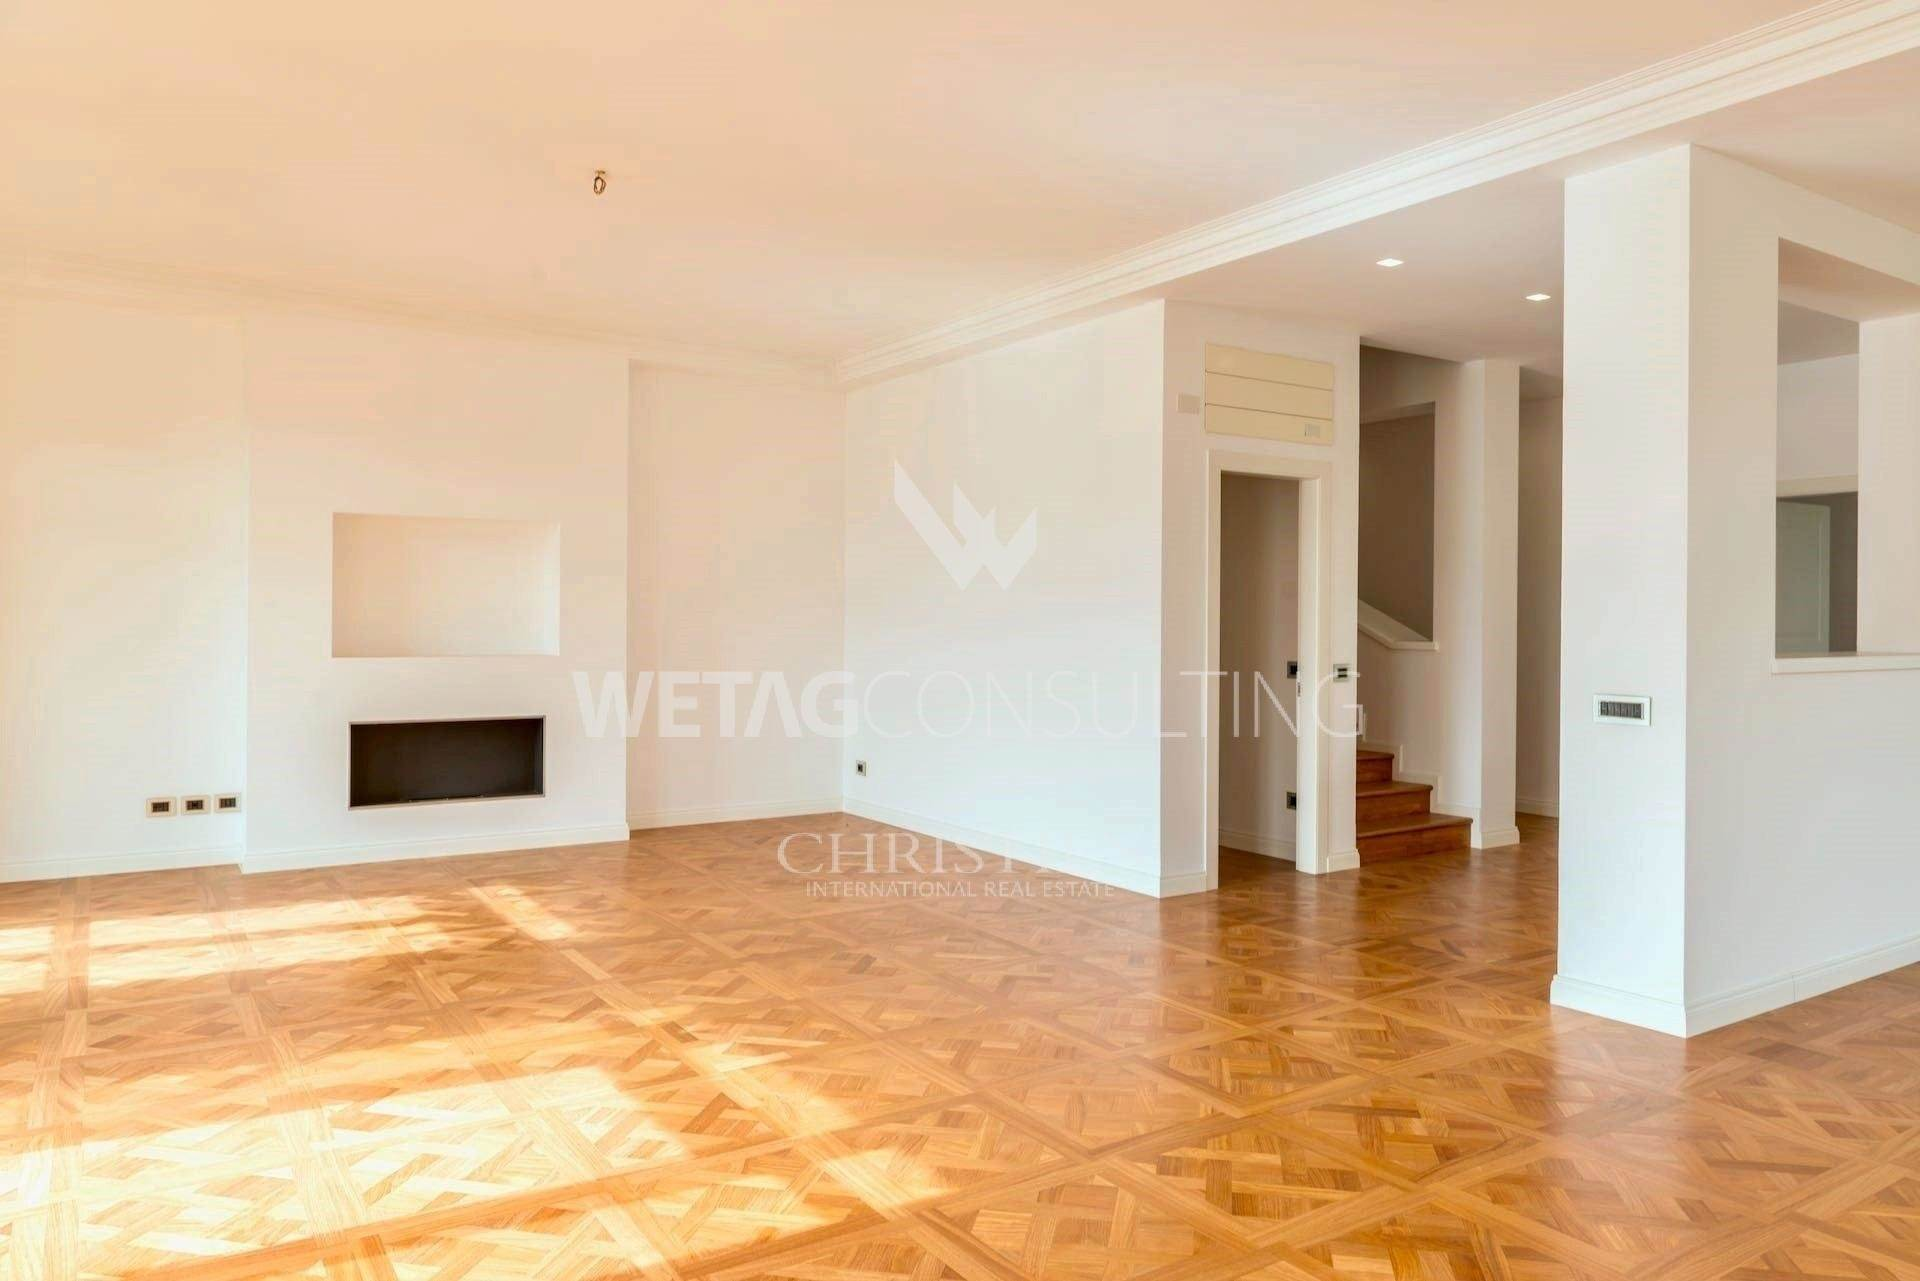 3. Apartamento por un Venta en Noble apartment house Bristol: duplex-penthouse for sale in the heart of Lugano Lugano, Tesino,6900 Suiza